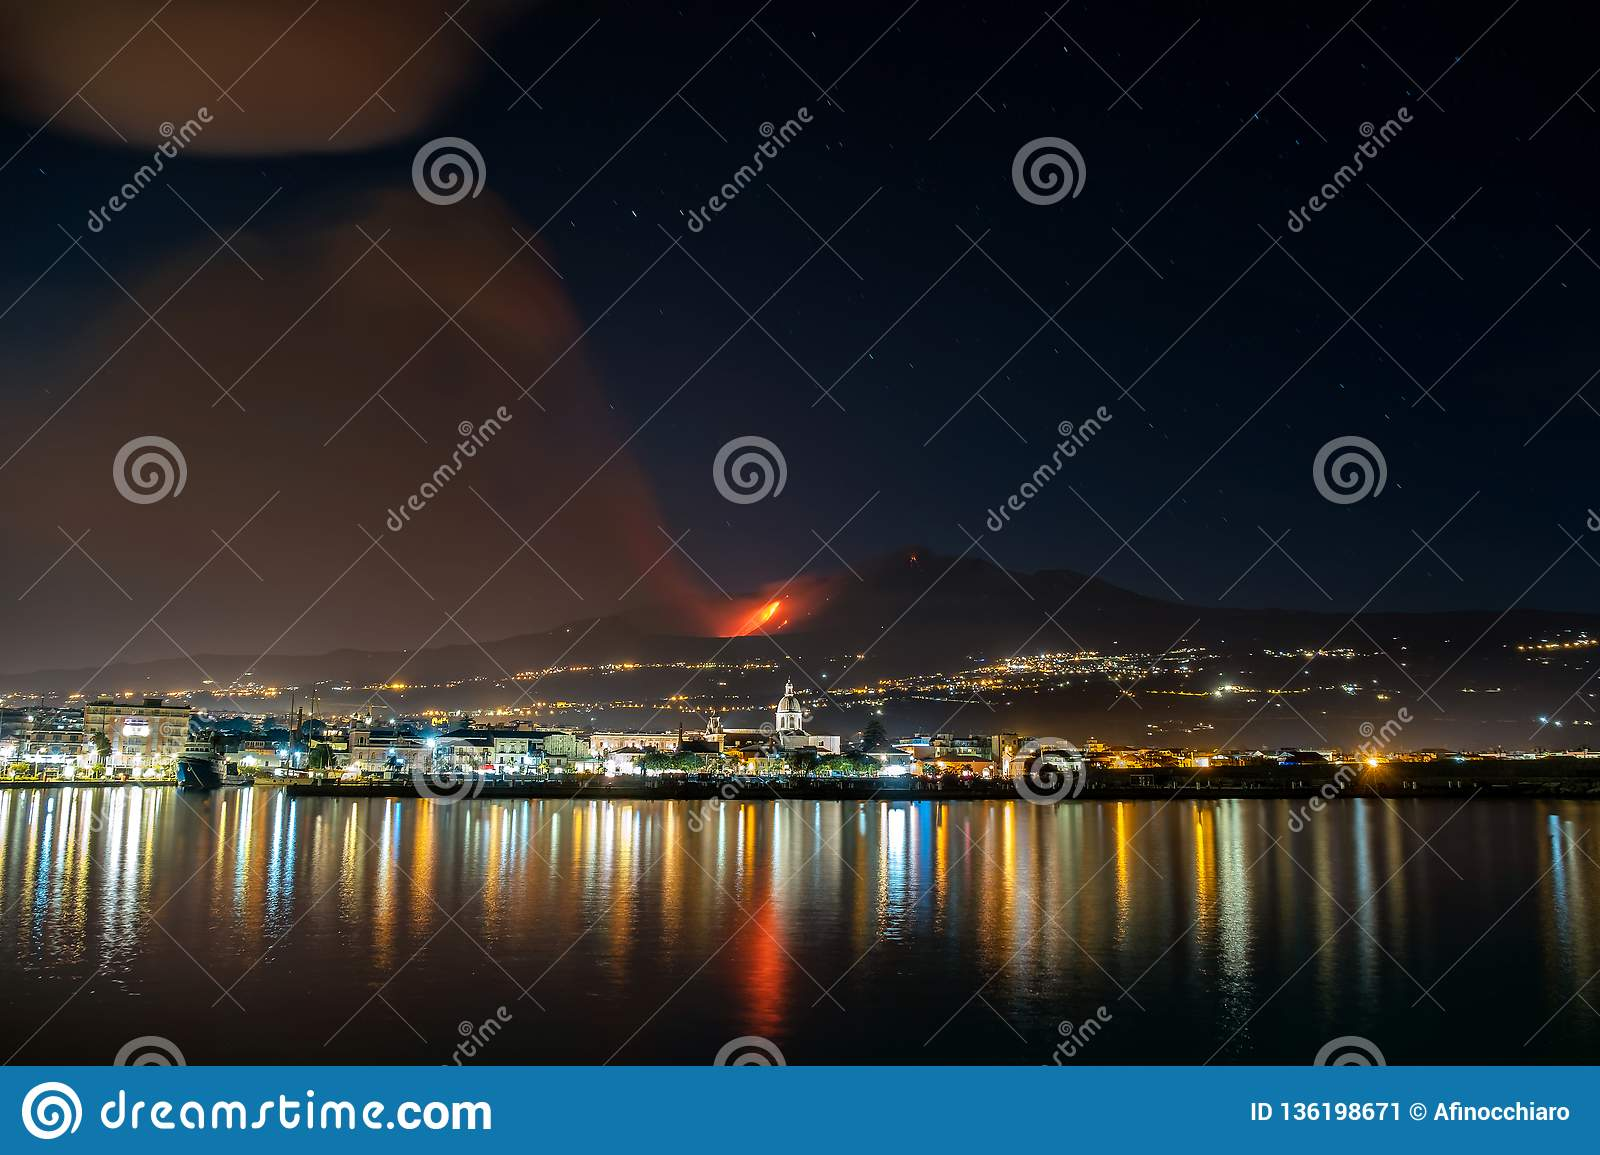 Volcanic eruption and ash plume at nighttime